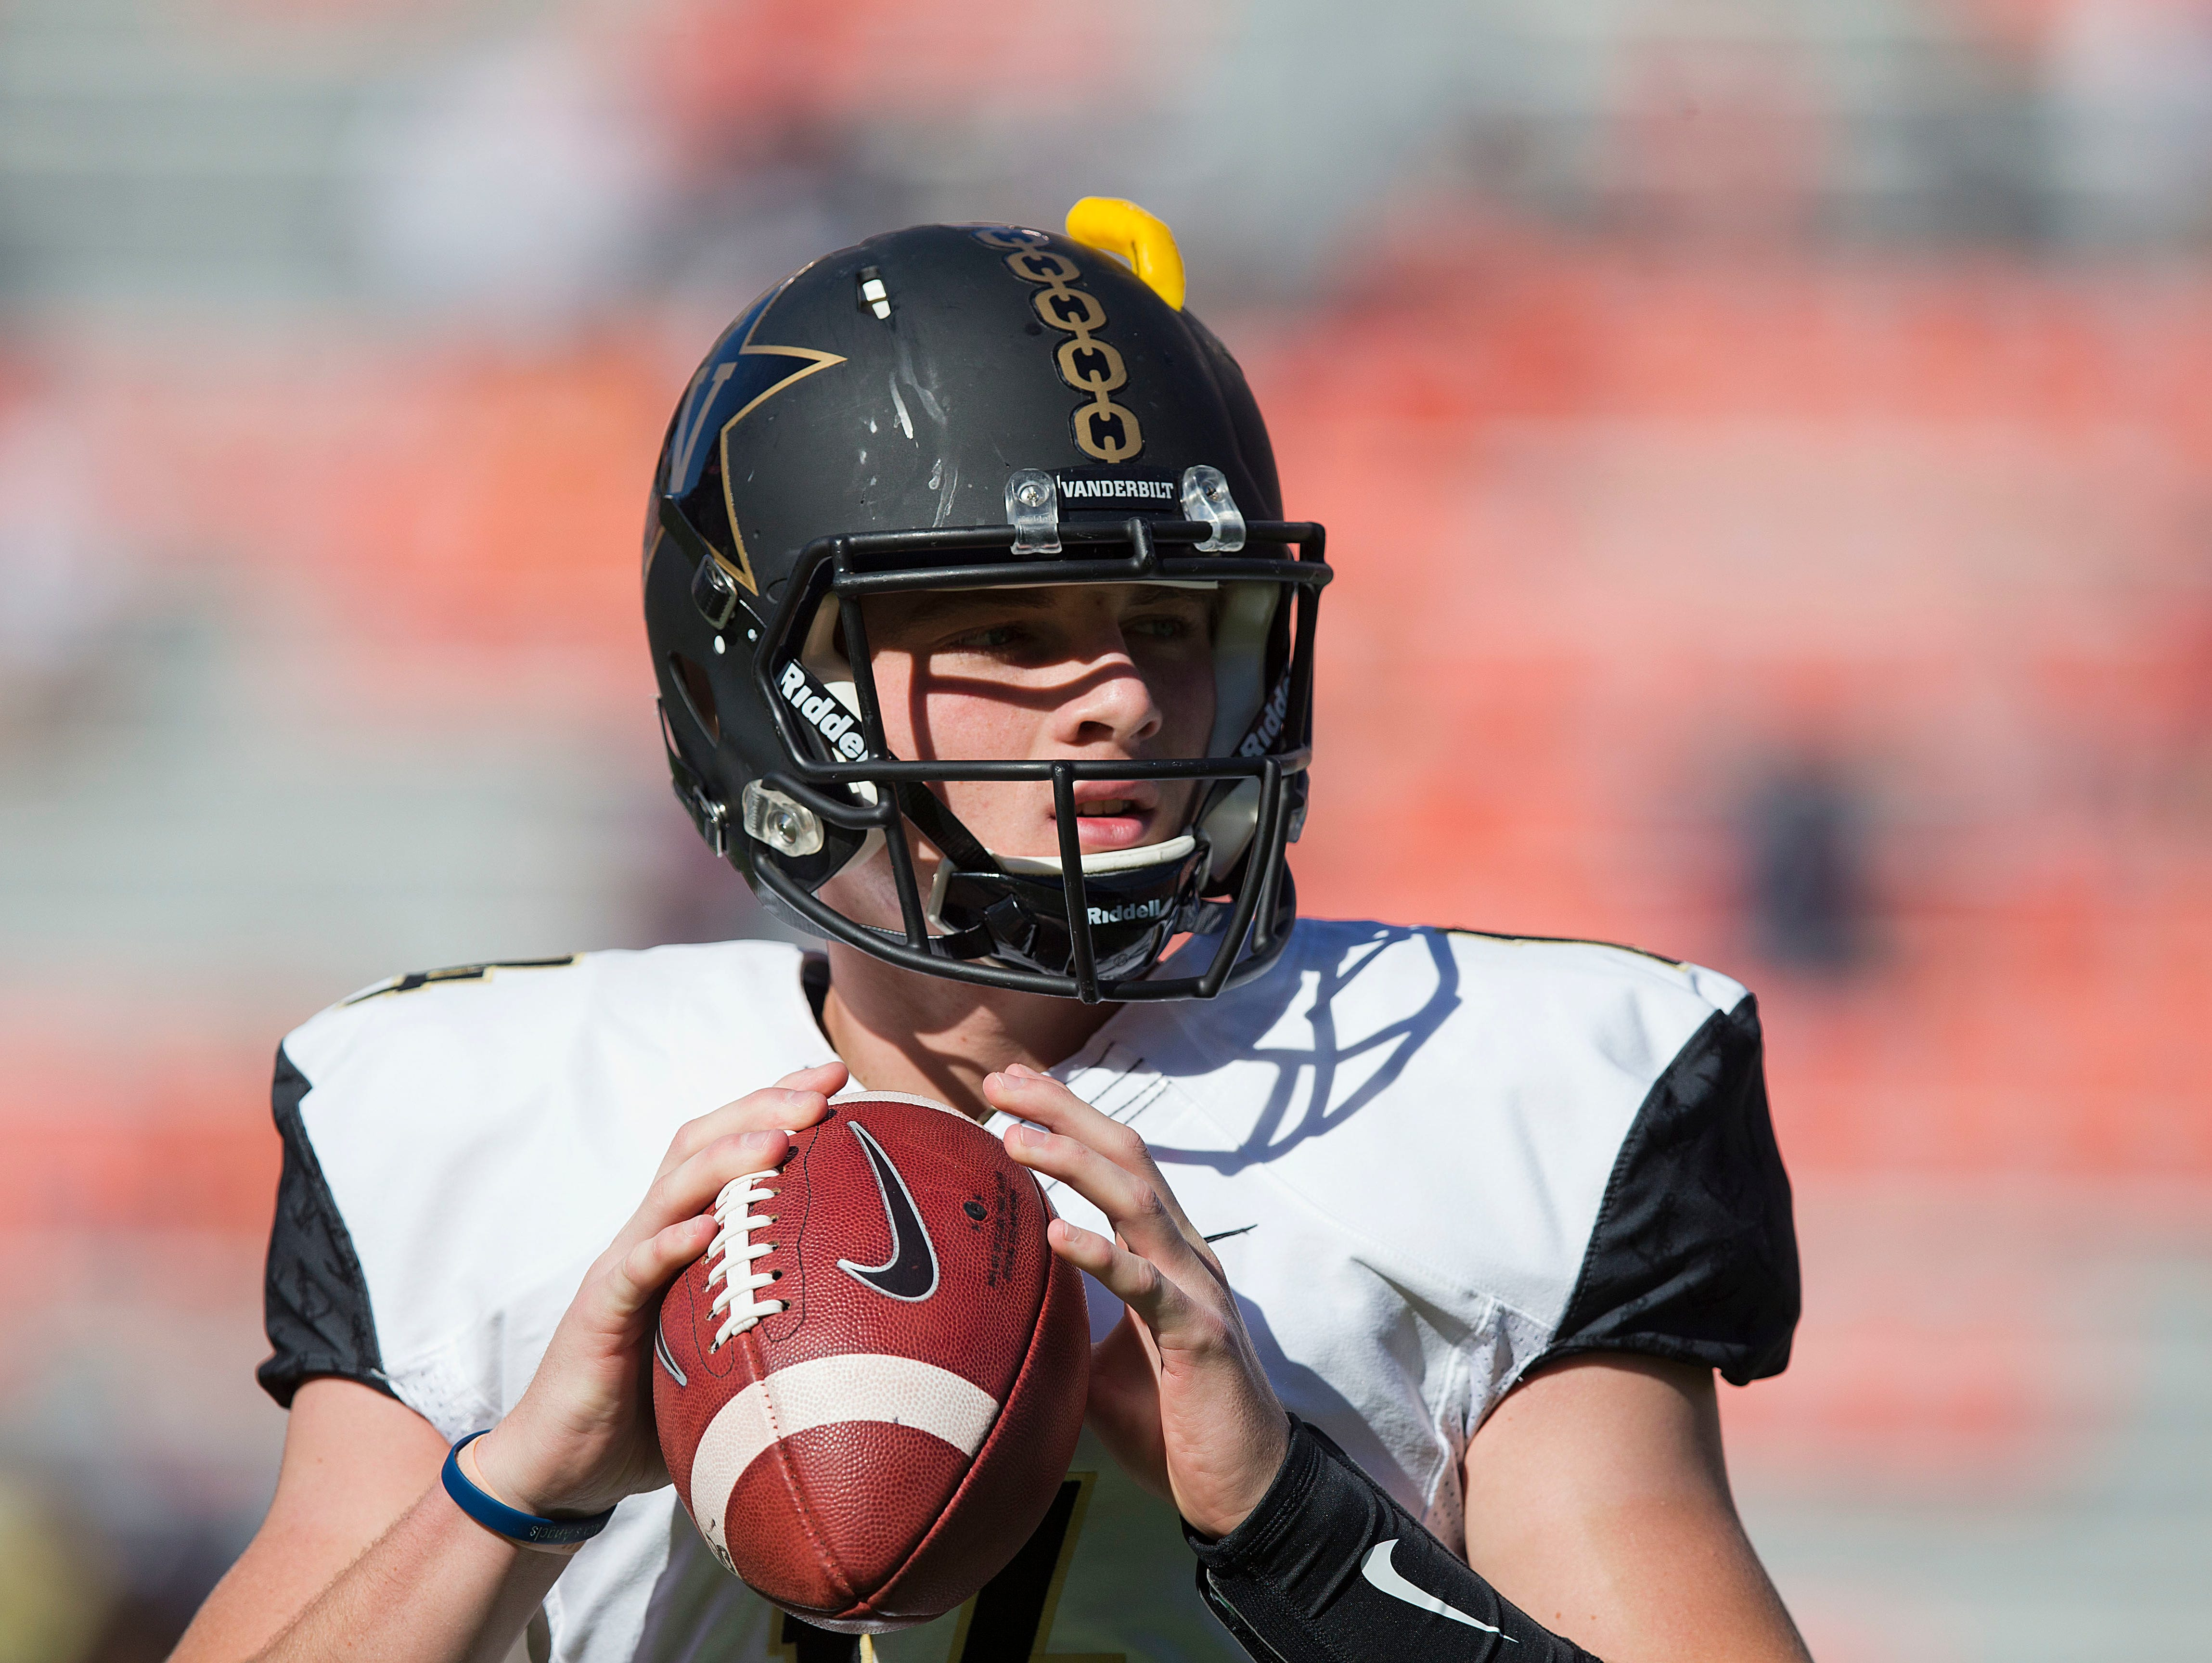 Vanderbilt quarterback Kyle Shurmur sets back to pass the ball during practice before the first half of an NCAA college football game against Auburn, Saturday, Nov. 5, 2016, in Auburn, Ala.